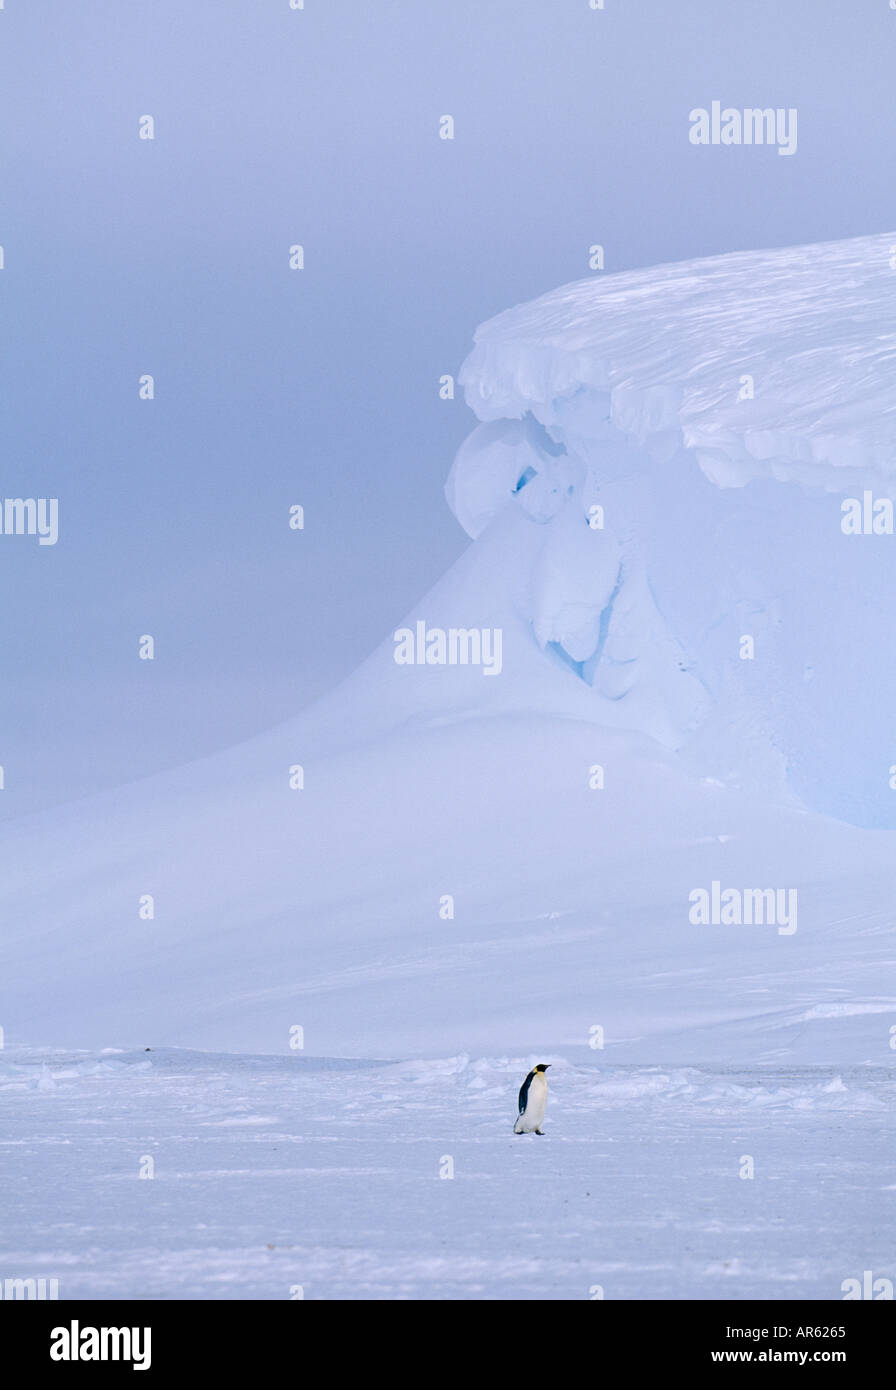 Emperor Penguin Aptenodytes forsteri lone adult returning to colony across sea ice of Weddell Sea Antarctica November - Stock Image